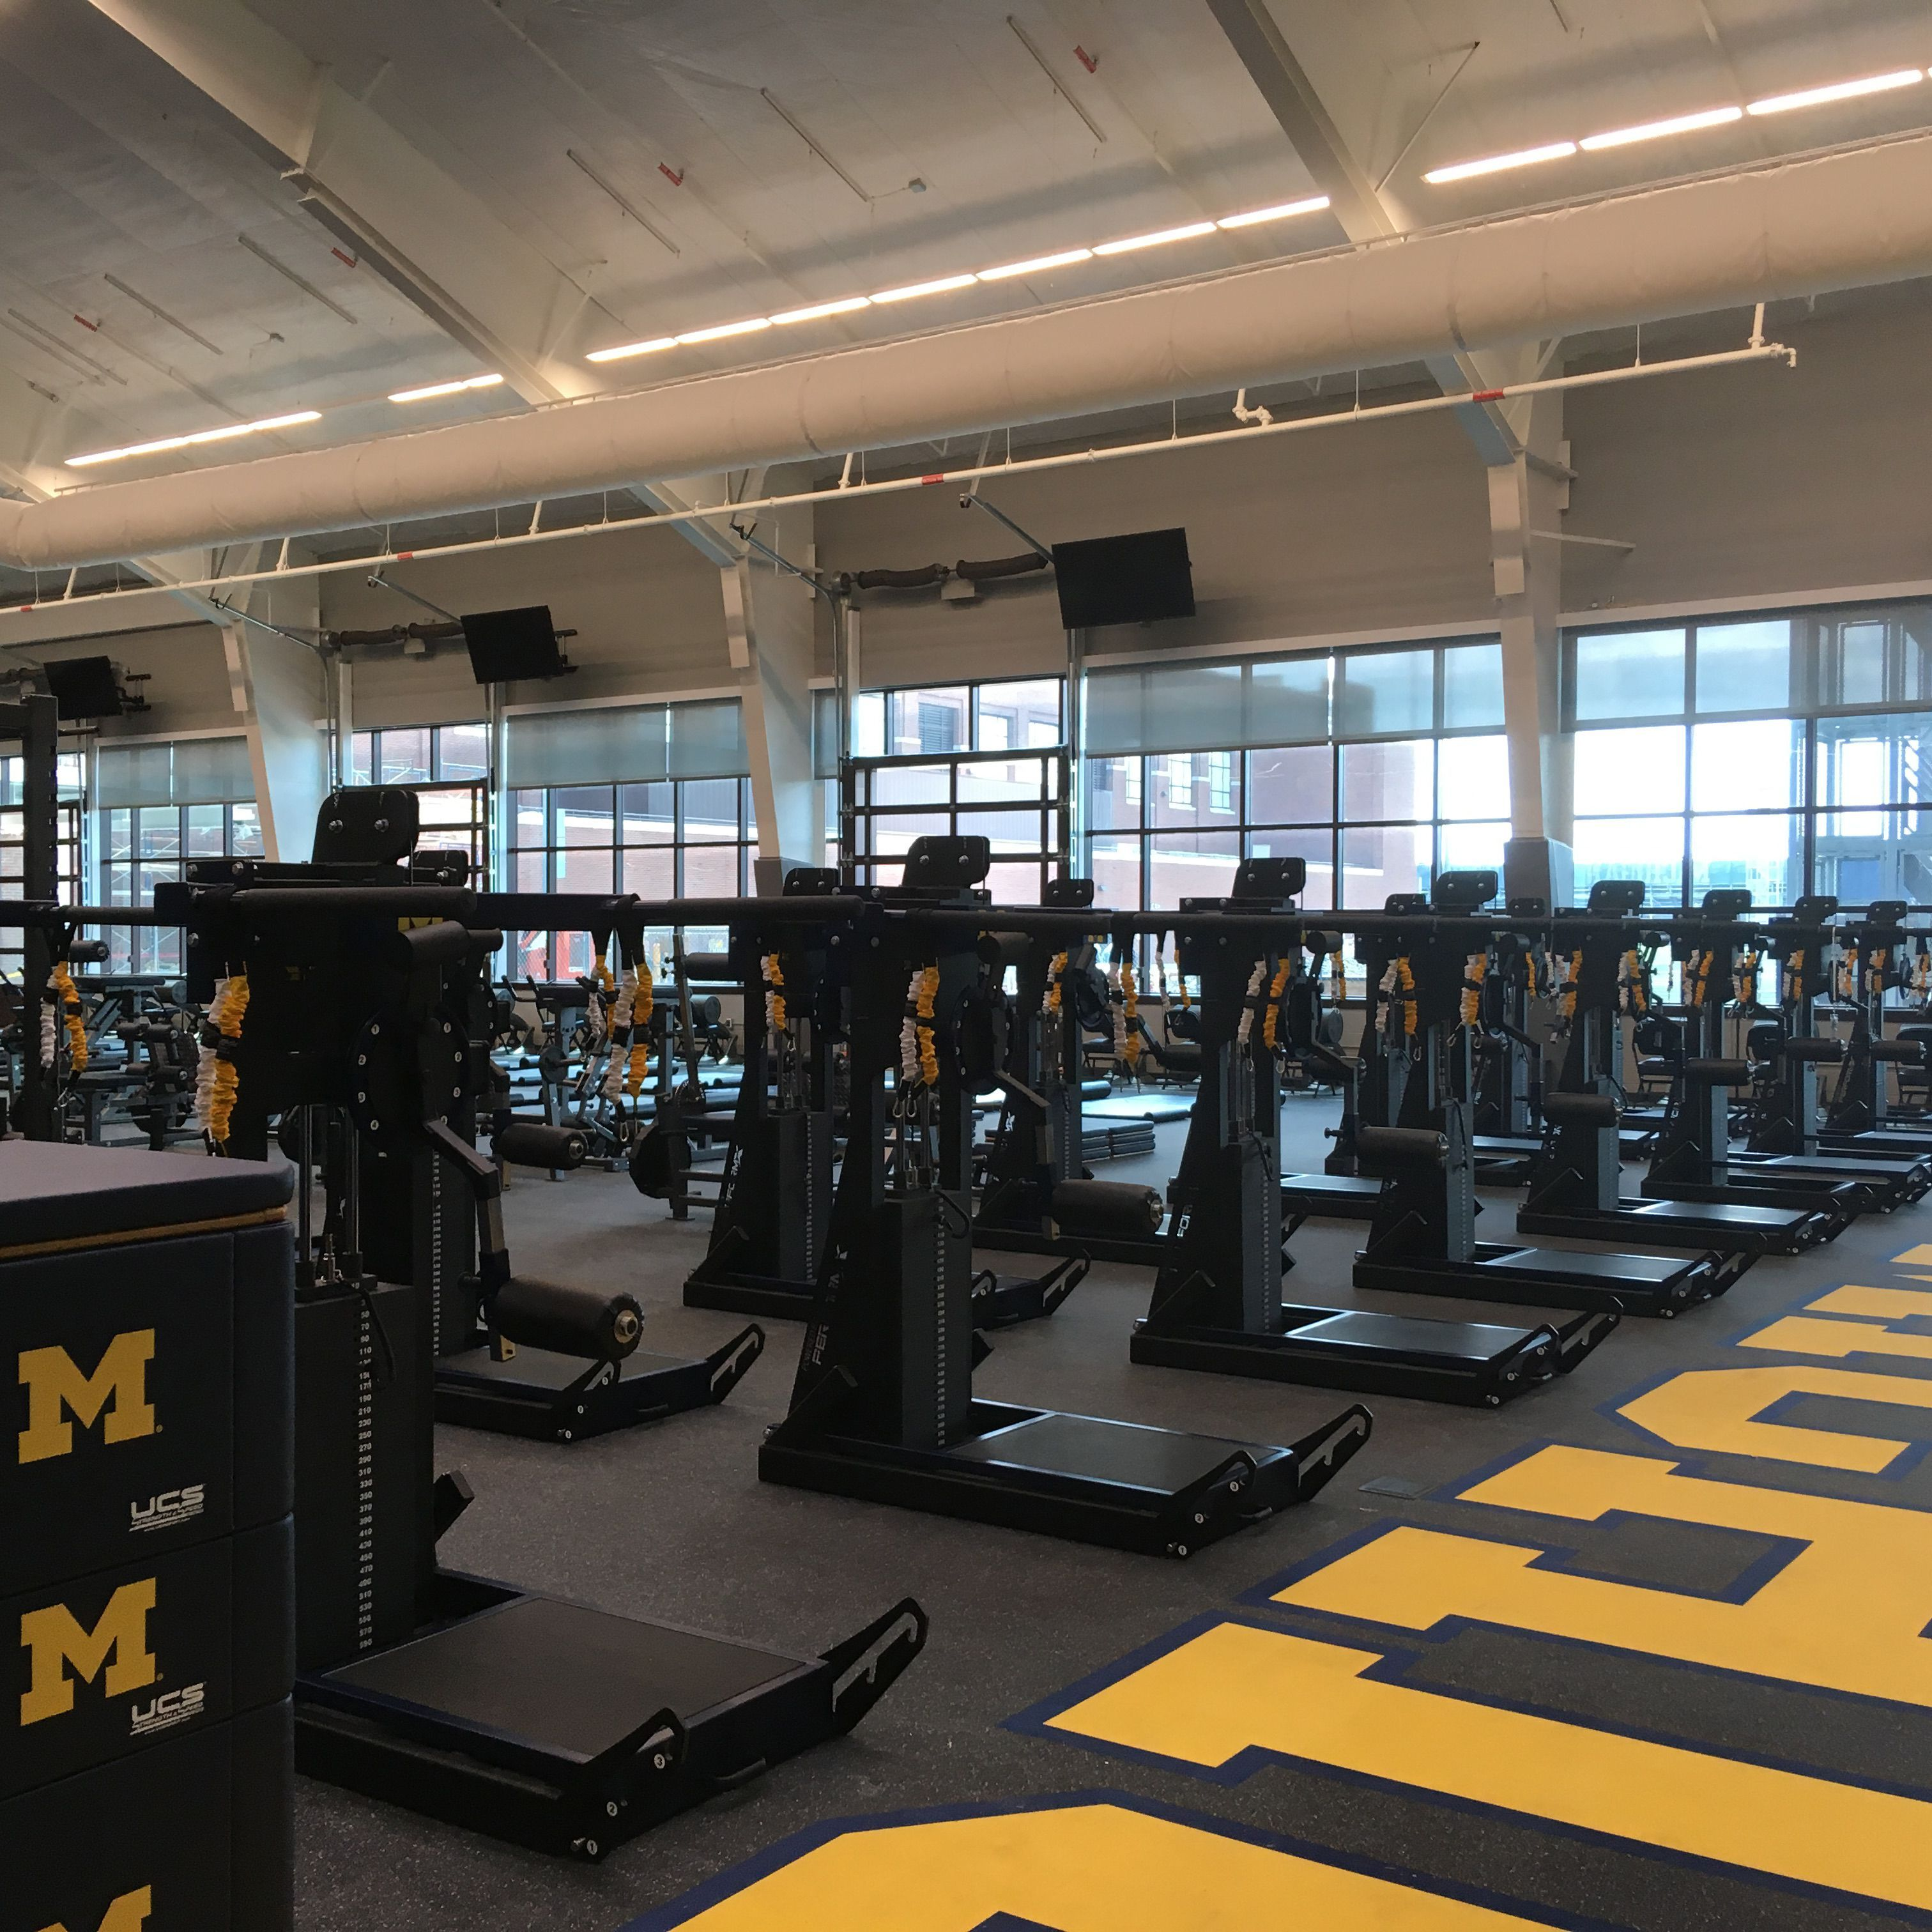 University Of Michigan Football Weightroom With Perform X Training Systems Https Www Perform X Com Michigan Sports Michigan Football Michigan